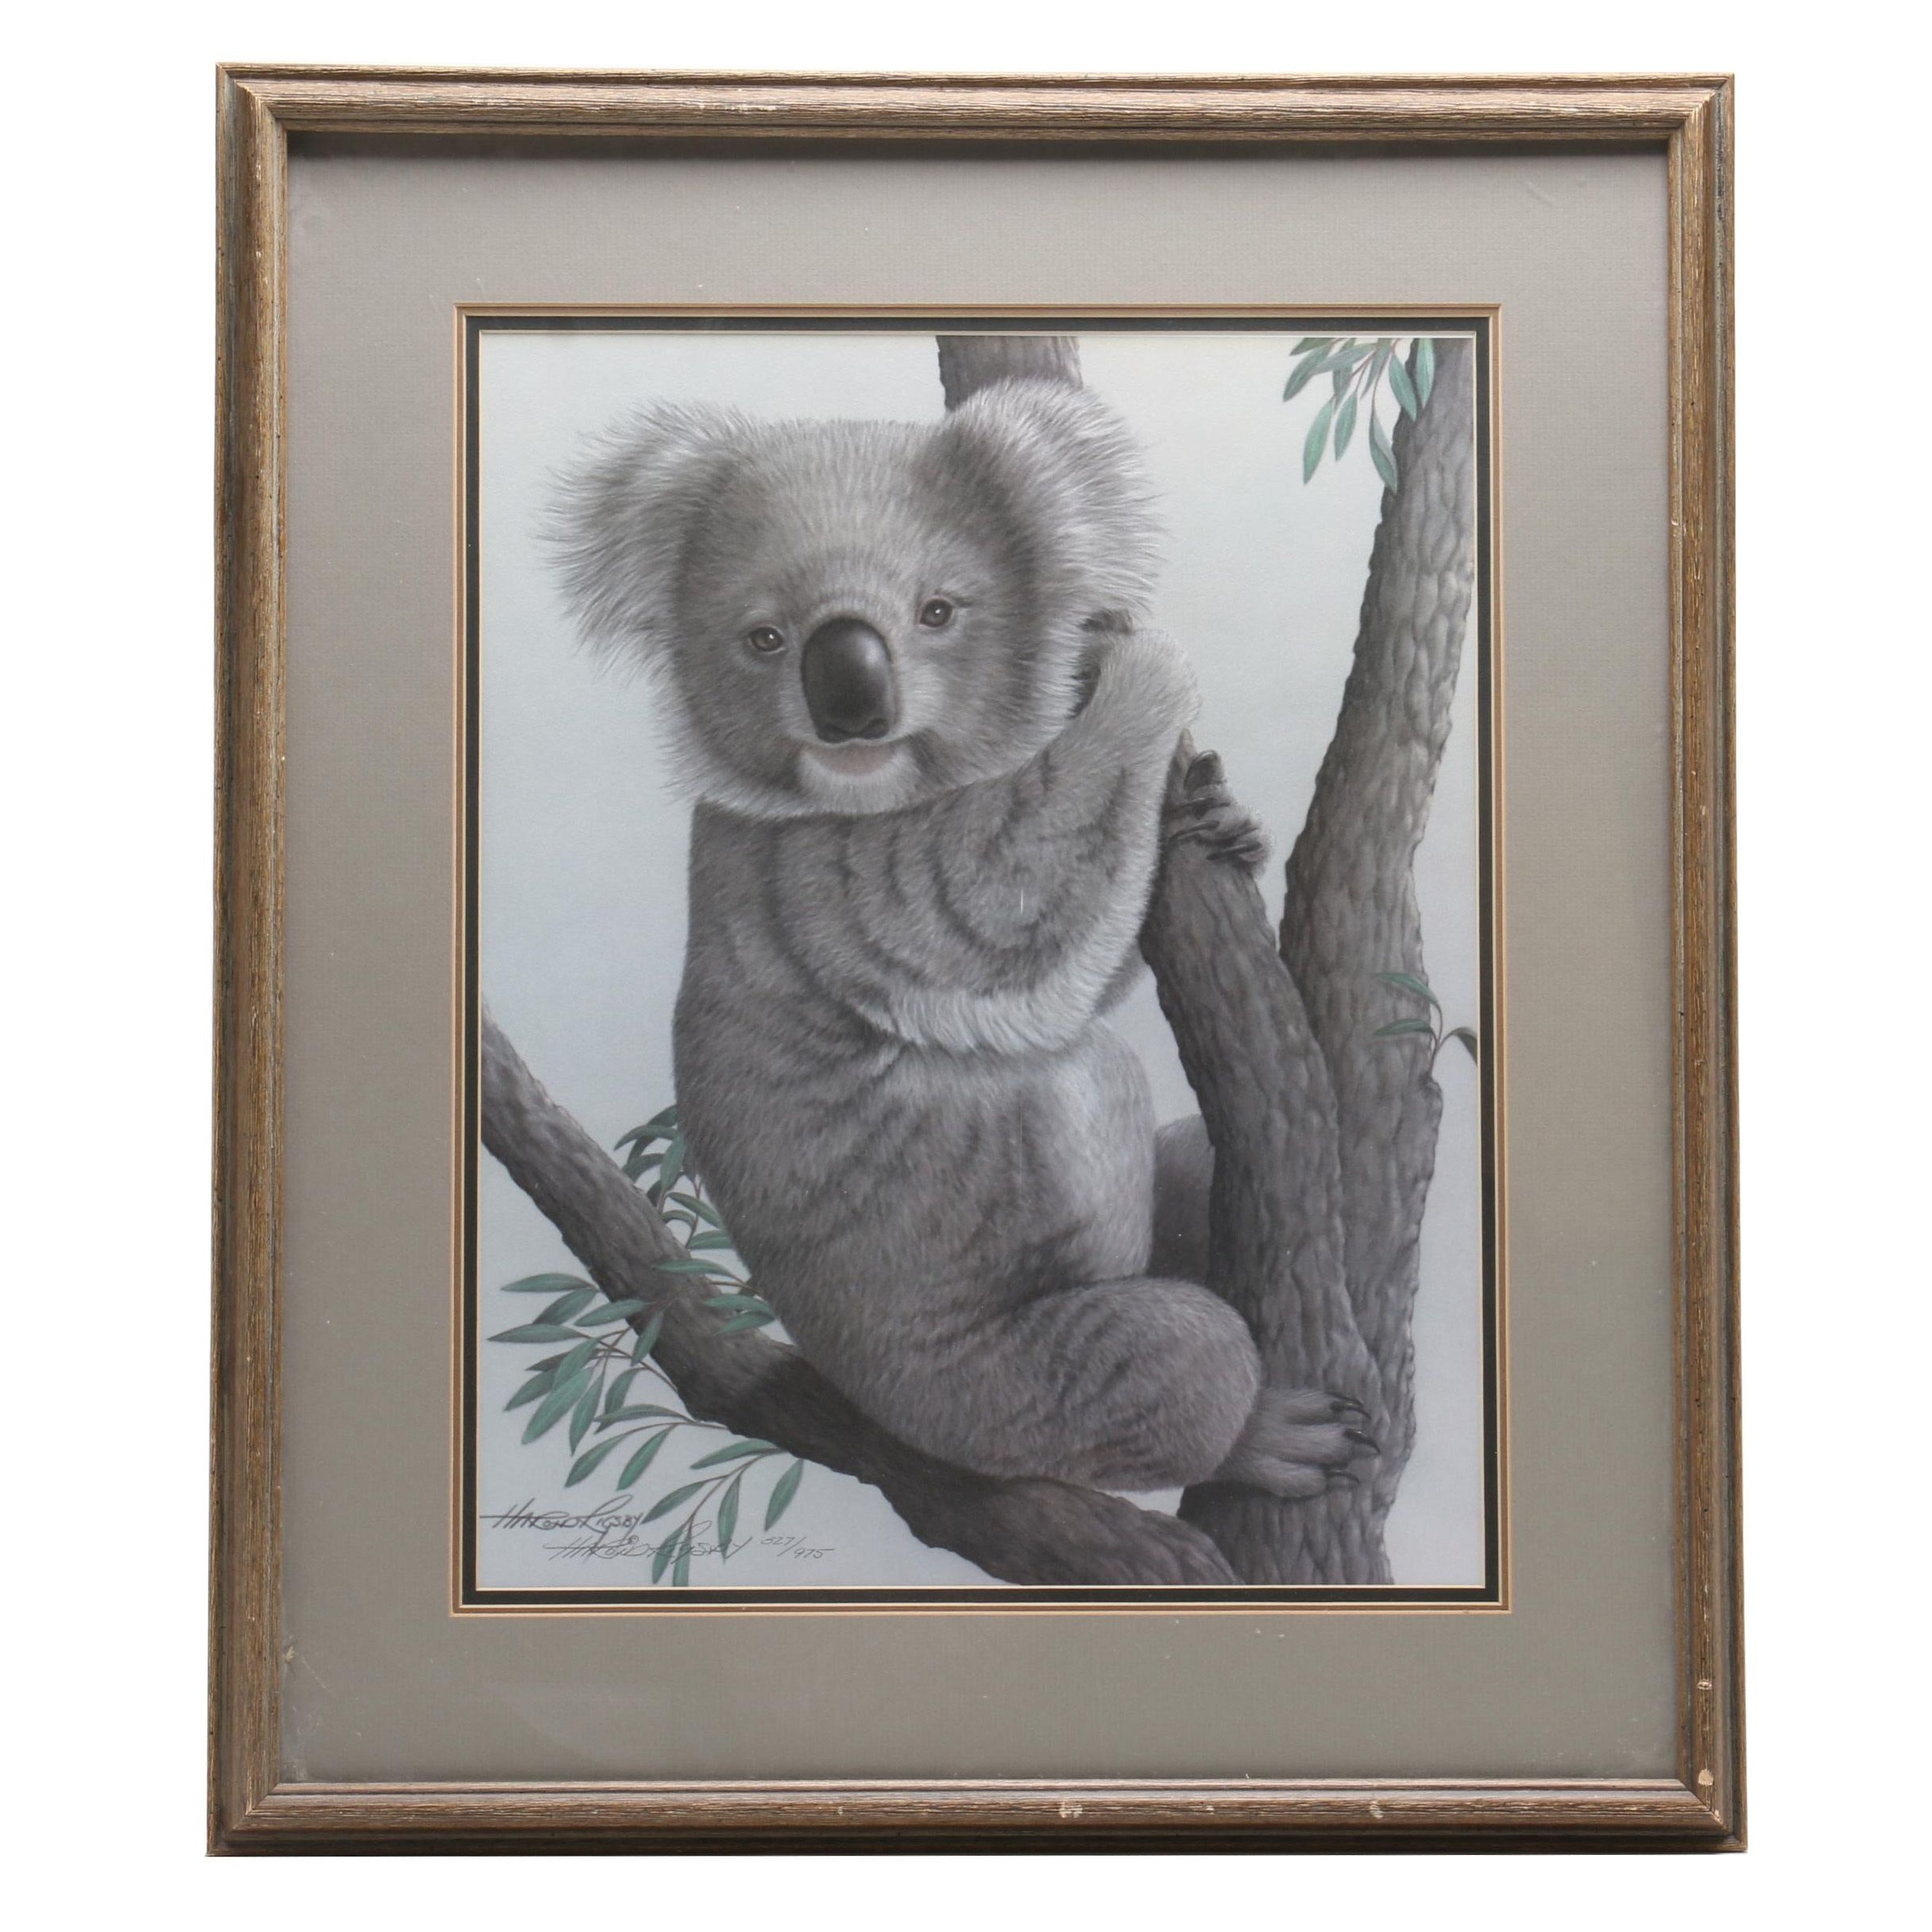 Harold Rigsby Offset Lithograph of a Koala